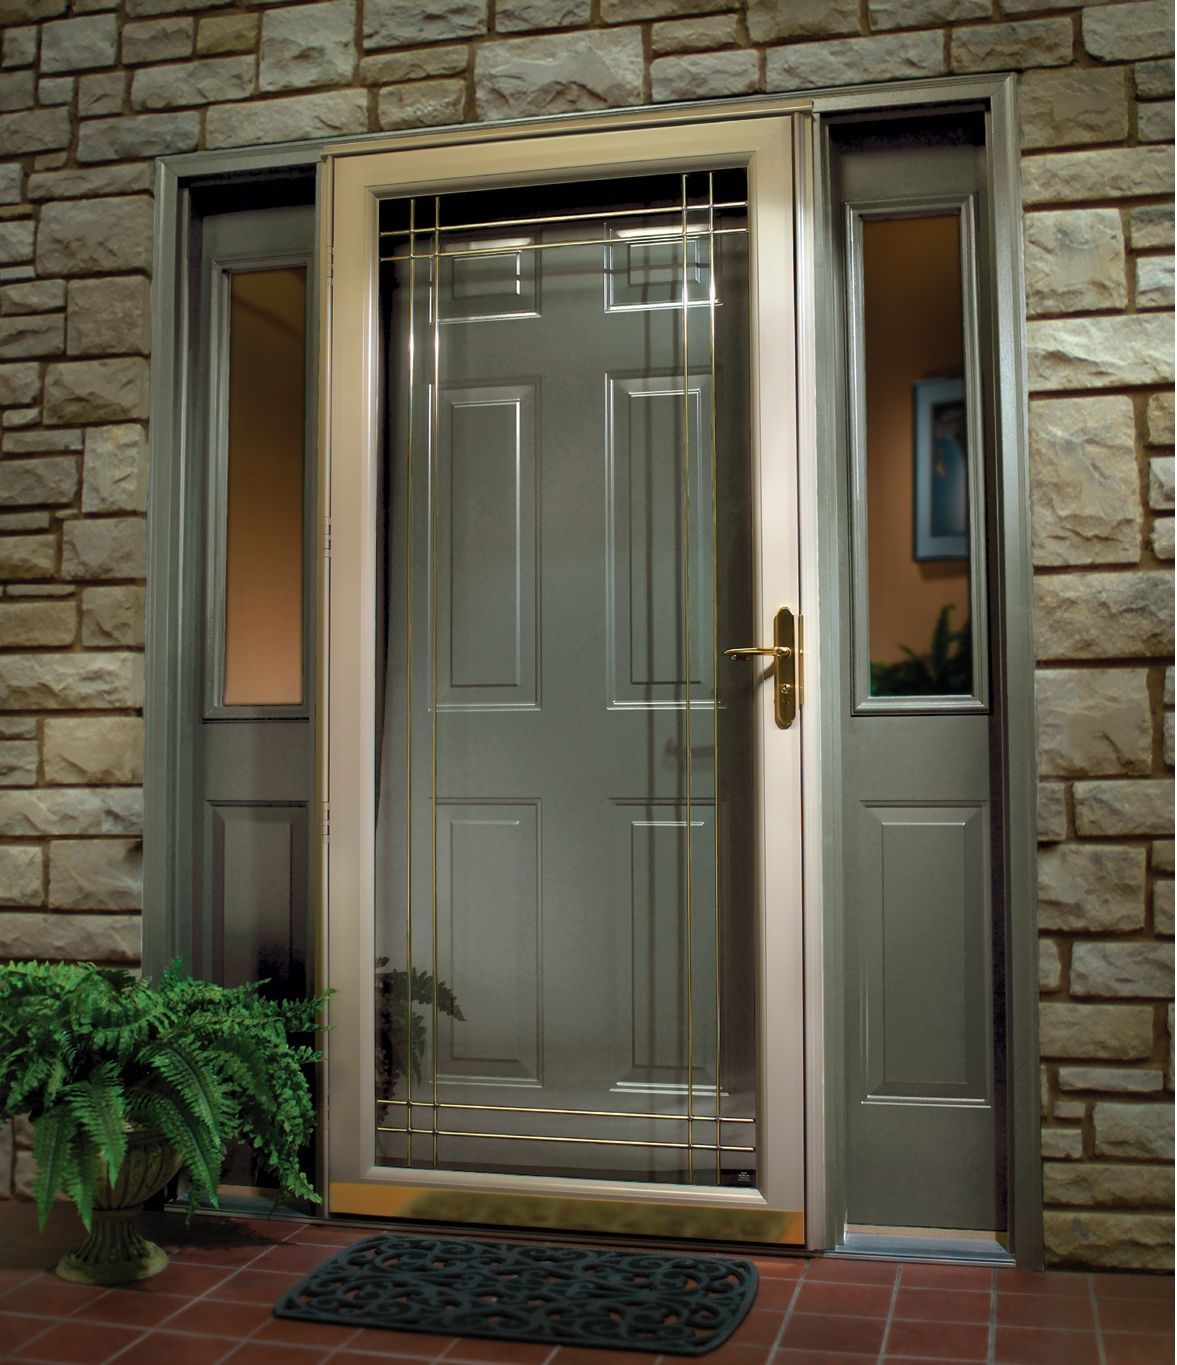 Exterior doors for homes front door ideas front entry for External door designs